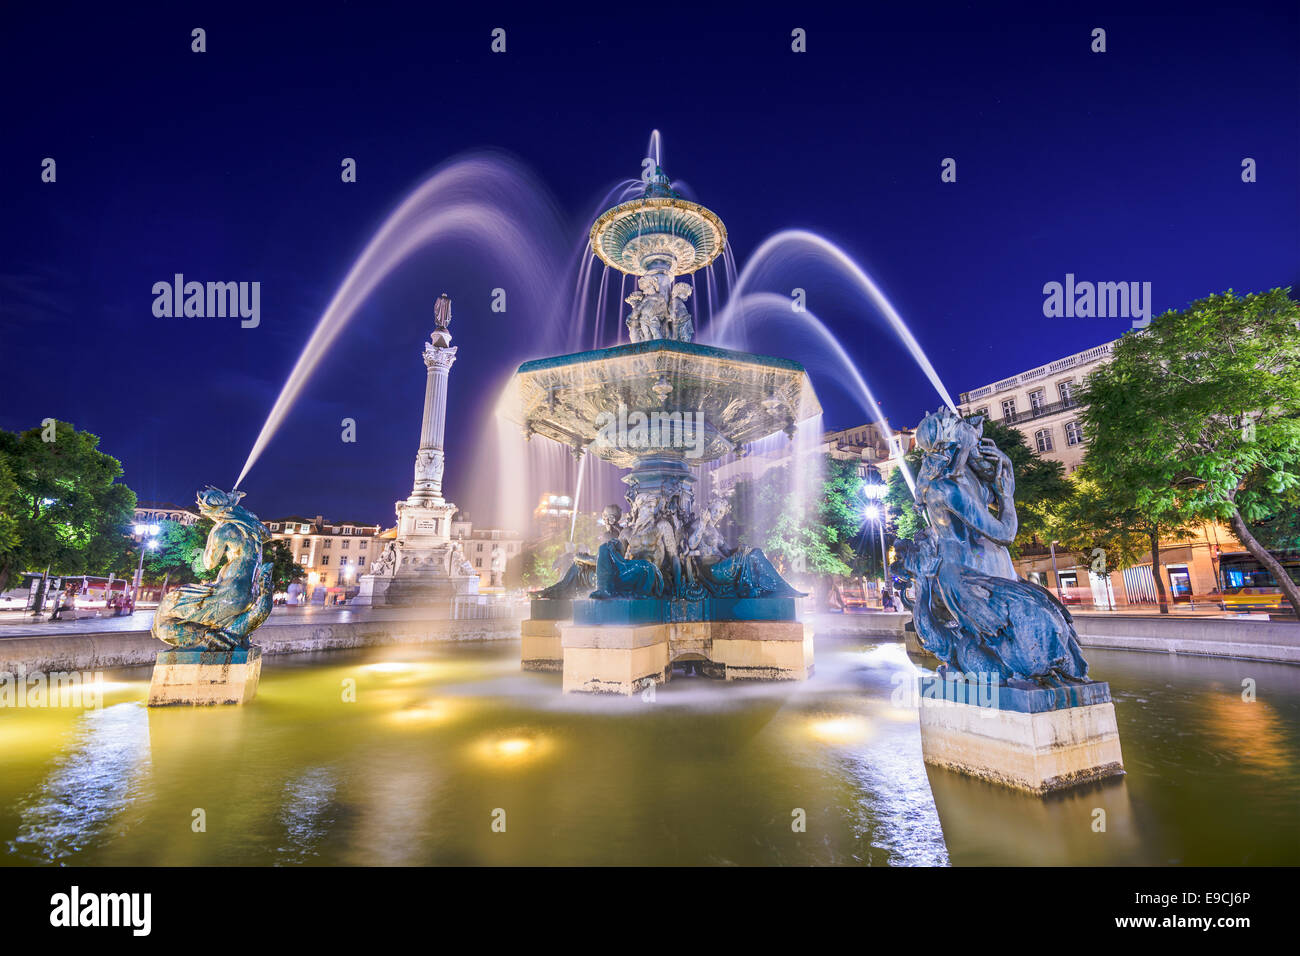 Lisbon, Portugal at the Rossio Square fountain. - Stock Image